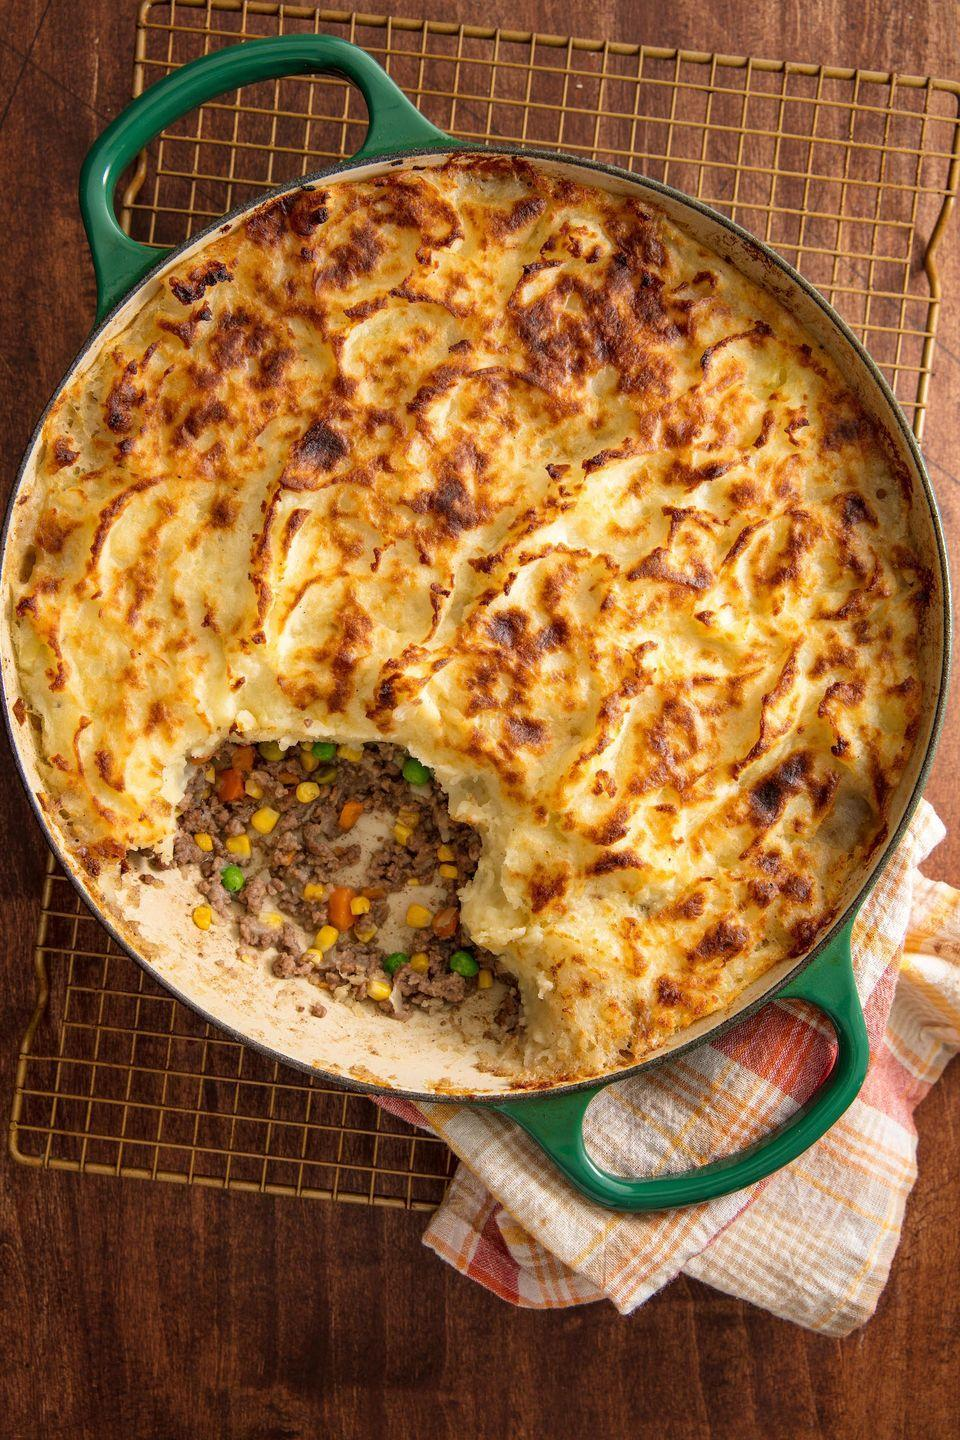 """<p>Cottage pie is essentially a shepherd's pie but with beef. It's a meat pie, filled with minced beef and topped with mashed potatoes. YUM. The sauce we use is super simple. </p><p>Get the <a href=""""https://www.delish.com/uk/cooking/recipes/a29139632/cottage-pie/"""" rel=""""nofollow noopener"""" target=""""_blank"""" data-ylk=""""slk:Cottage Pie"""" class=""""link rapid-noclick-resp"""">Cottage Pie</a> recipe. </p>"""